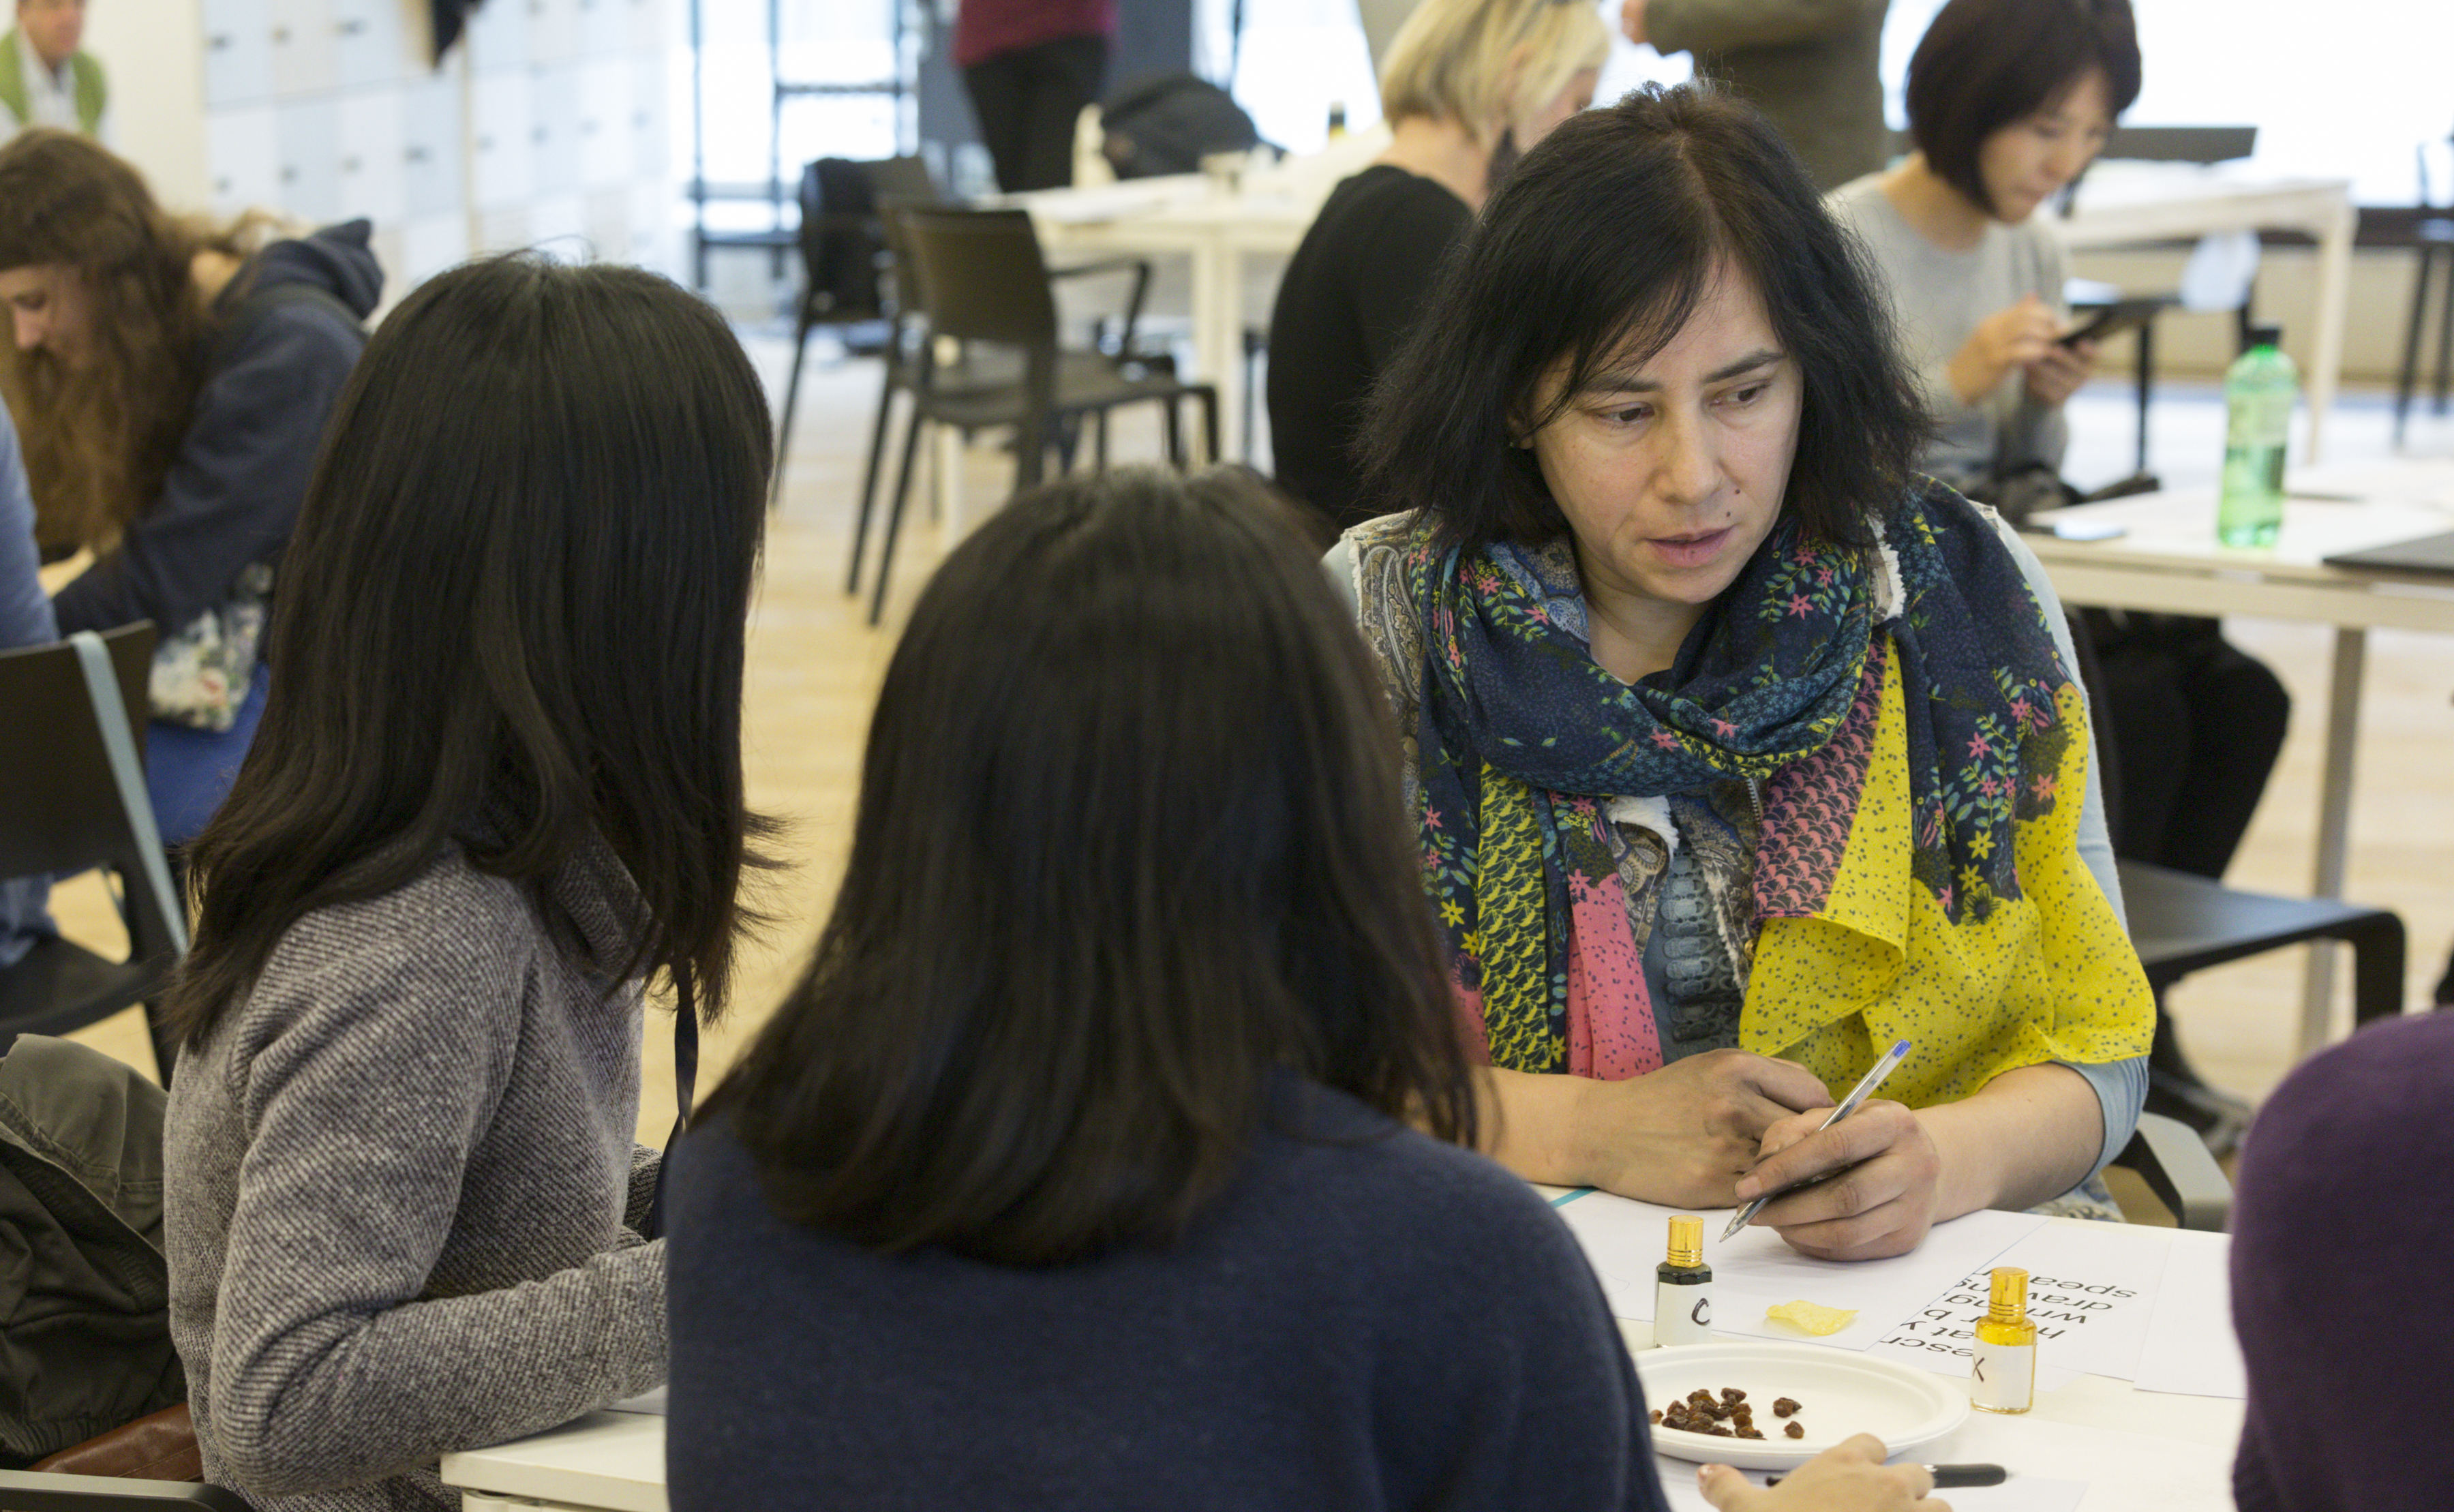 three women lean forward whilst involved in aworkshop; the man is surrounded by other people, all of whom are using art materials in an atmosphere of engaged activity